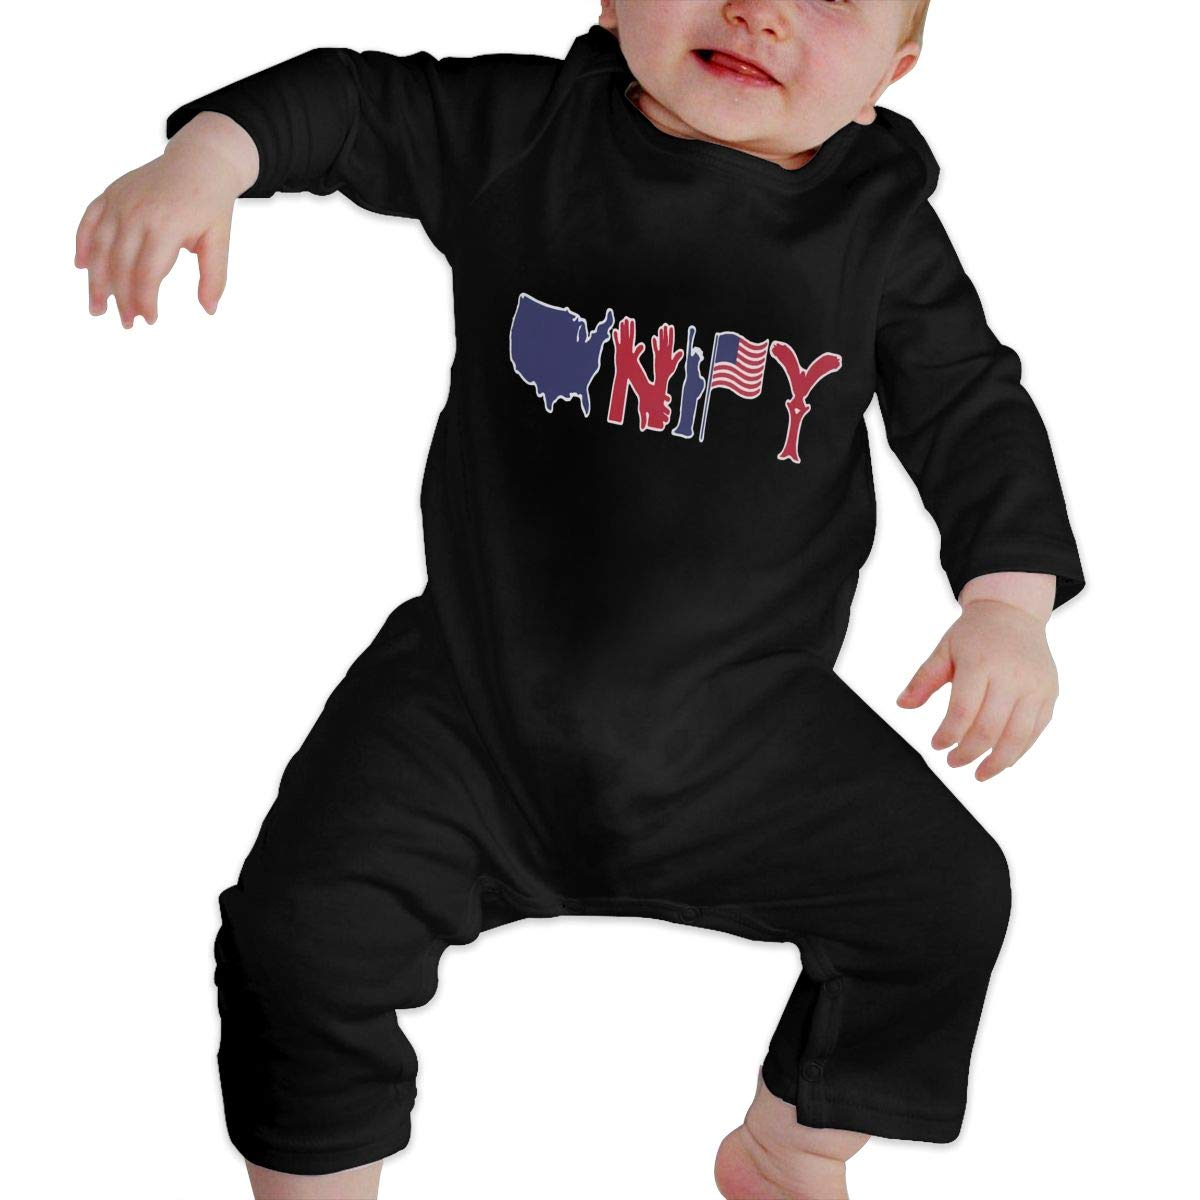 Db84UR@5p Infant Baby Girls Boys Long Sleeve Jumpsuit Little Unify Cotton Sleepwear